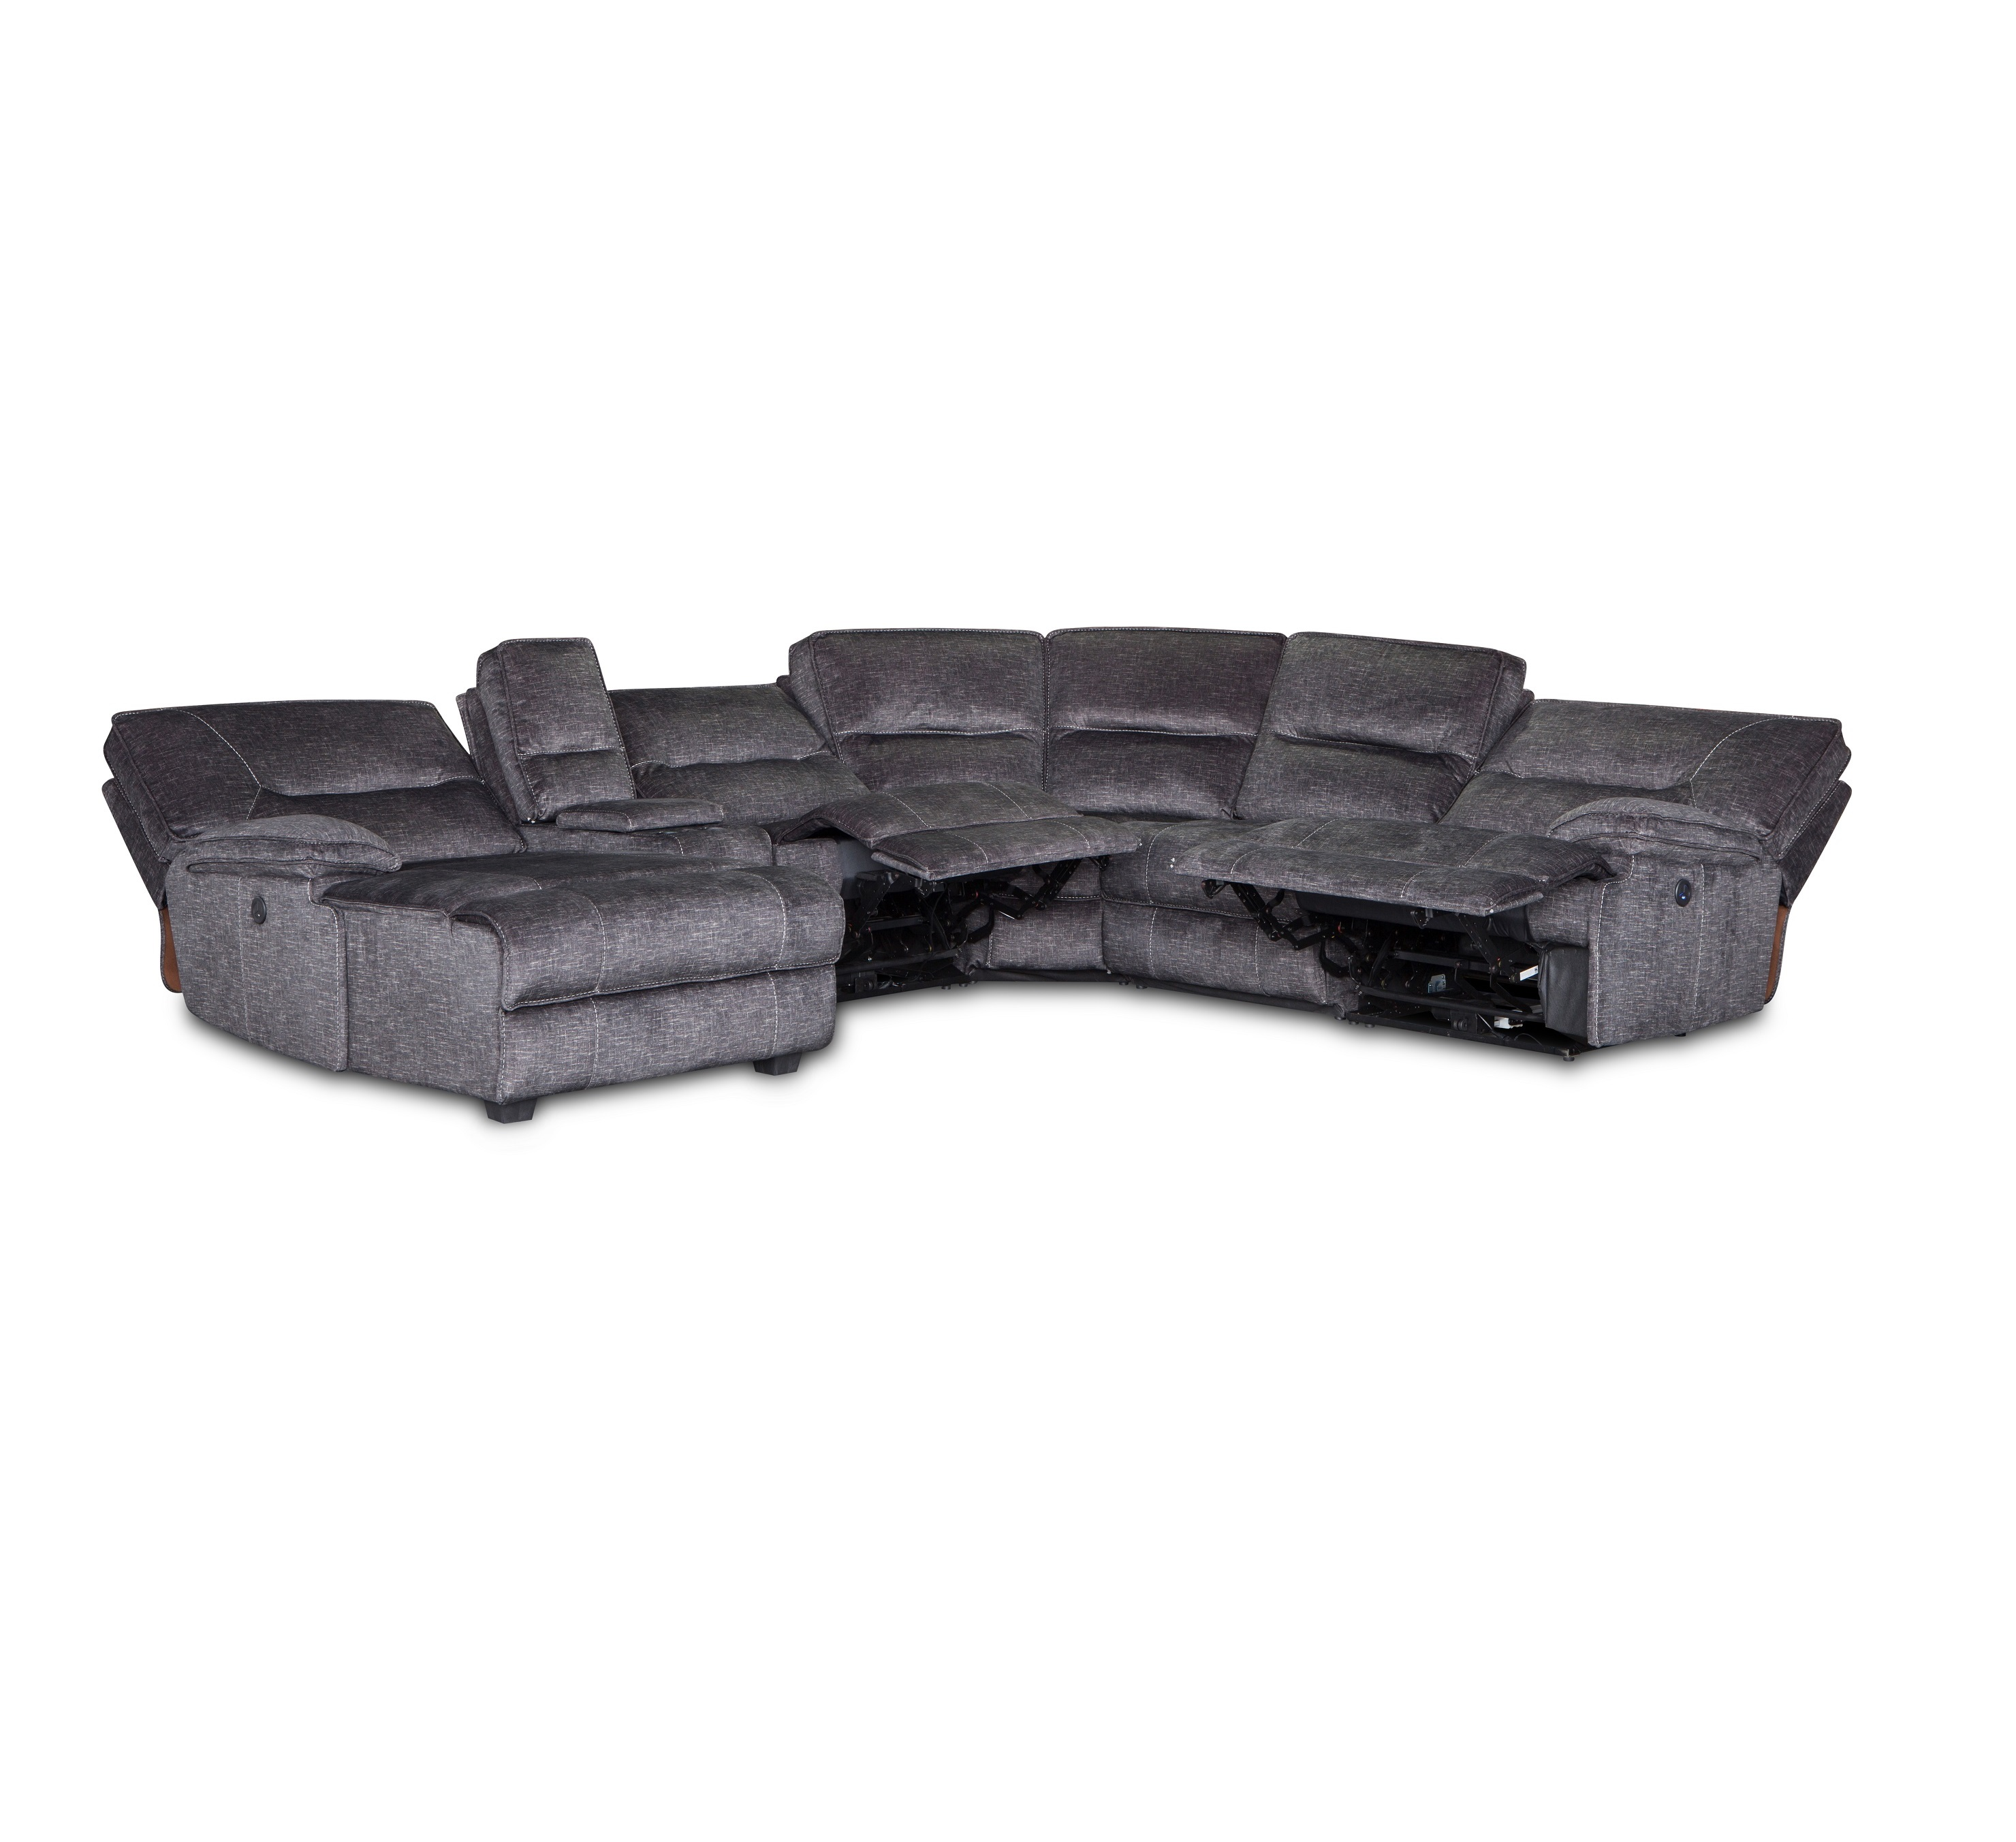 Luxury multifunction fabric recliner sectional sofa set